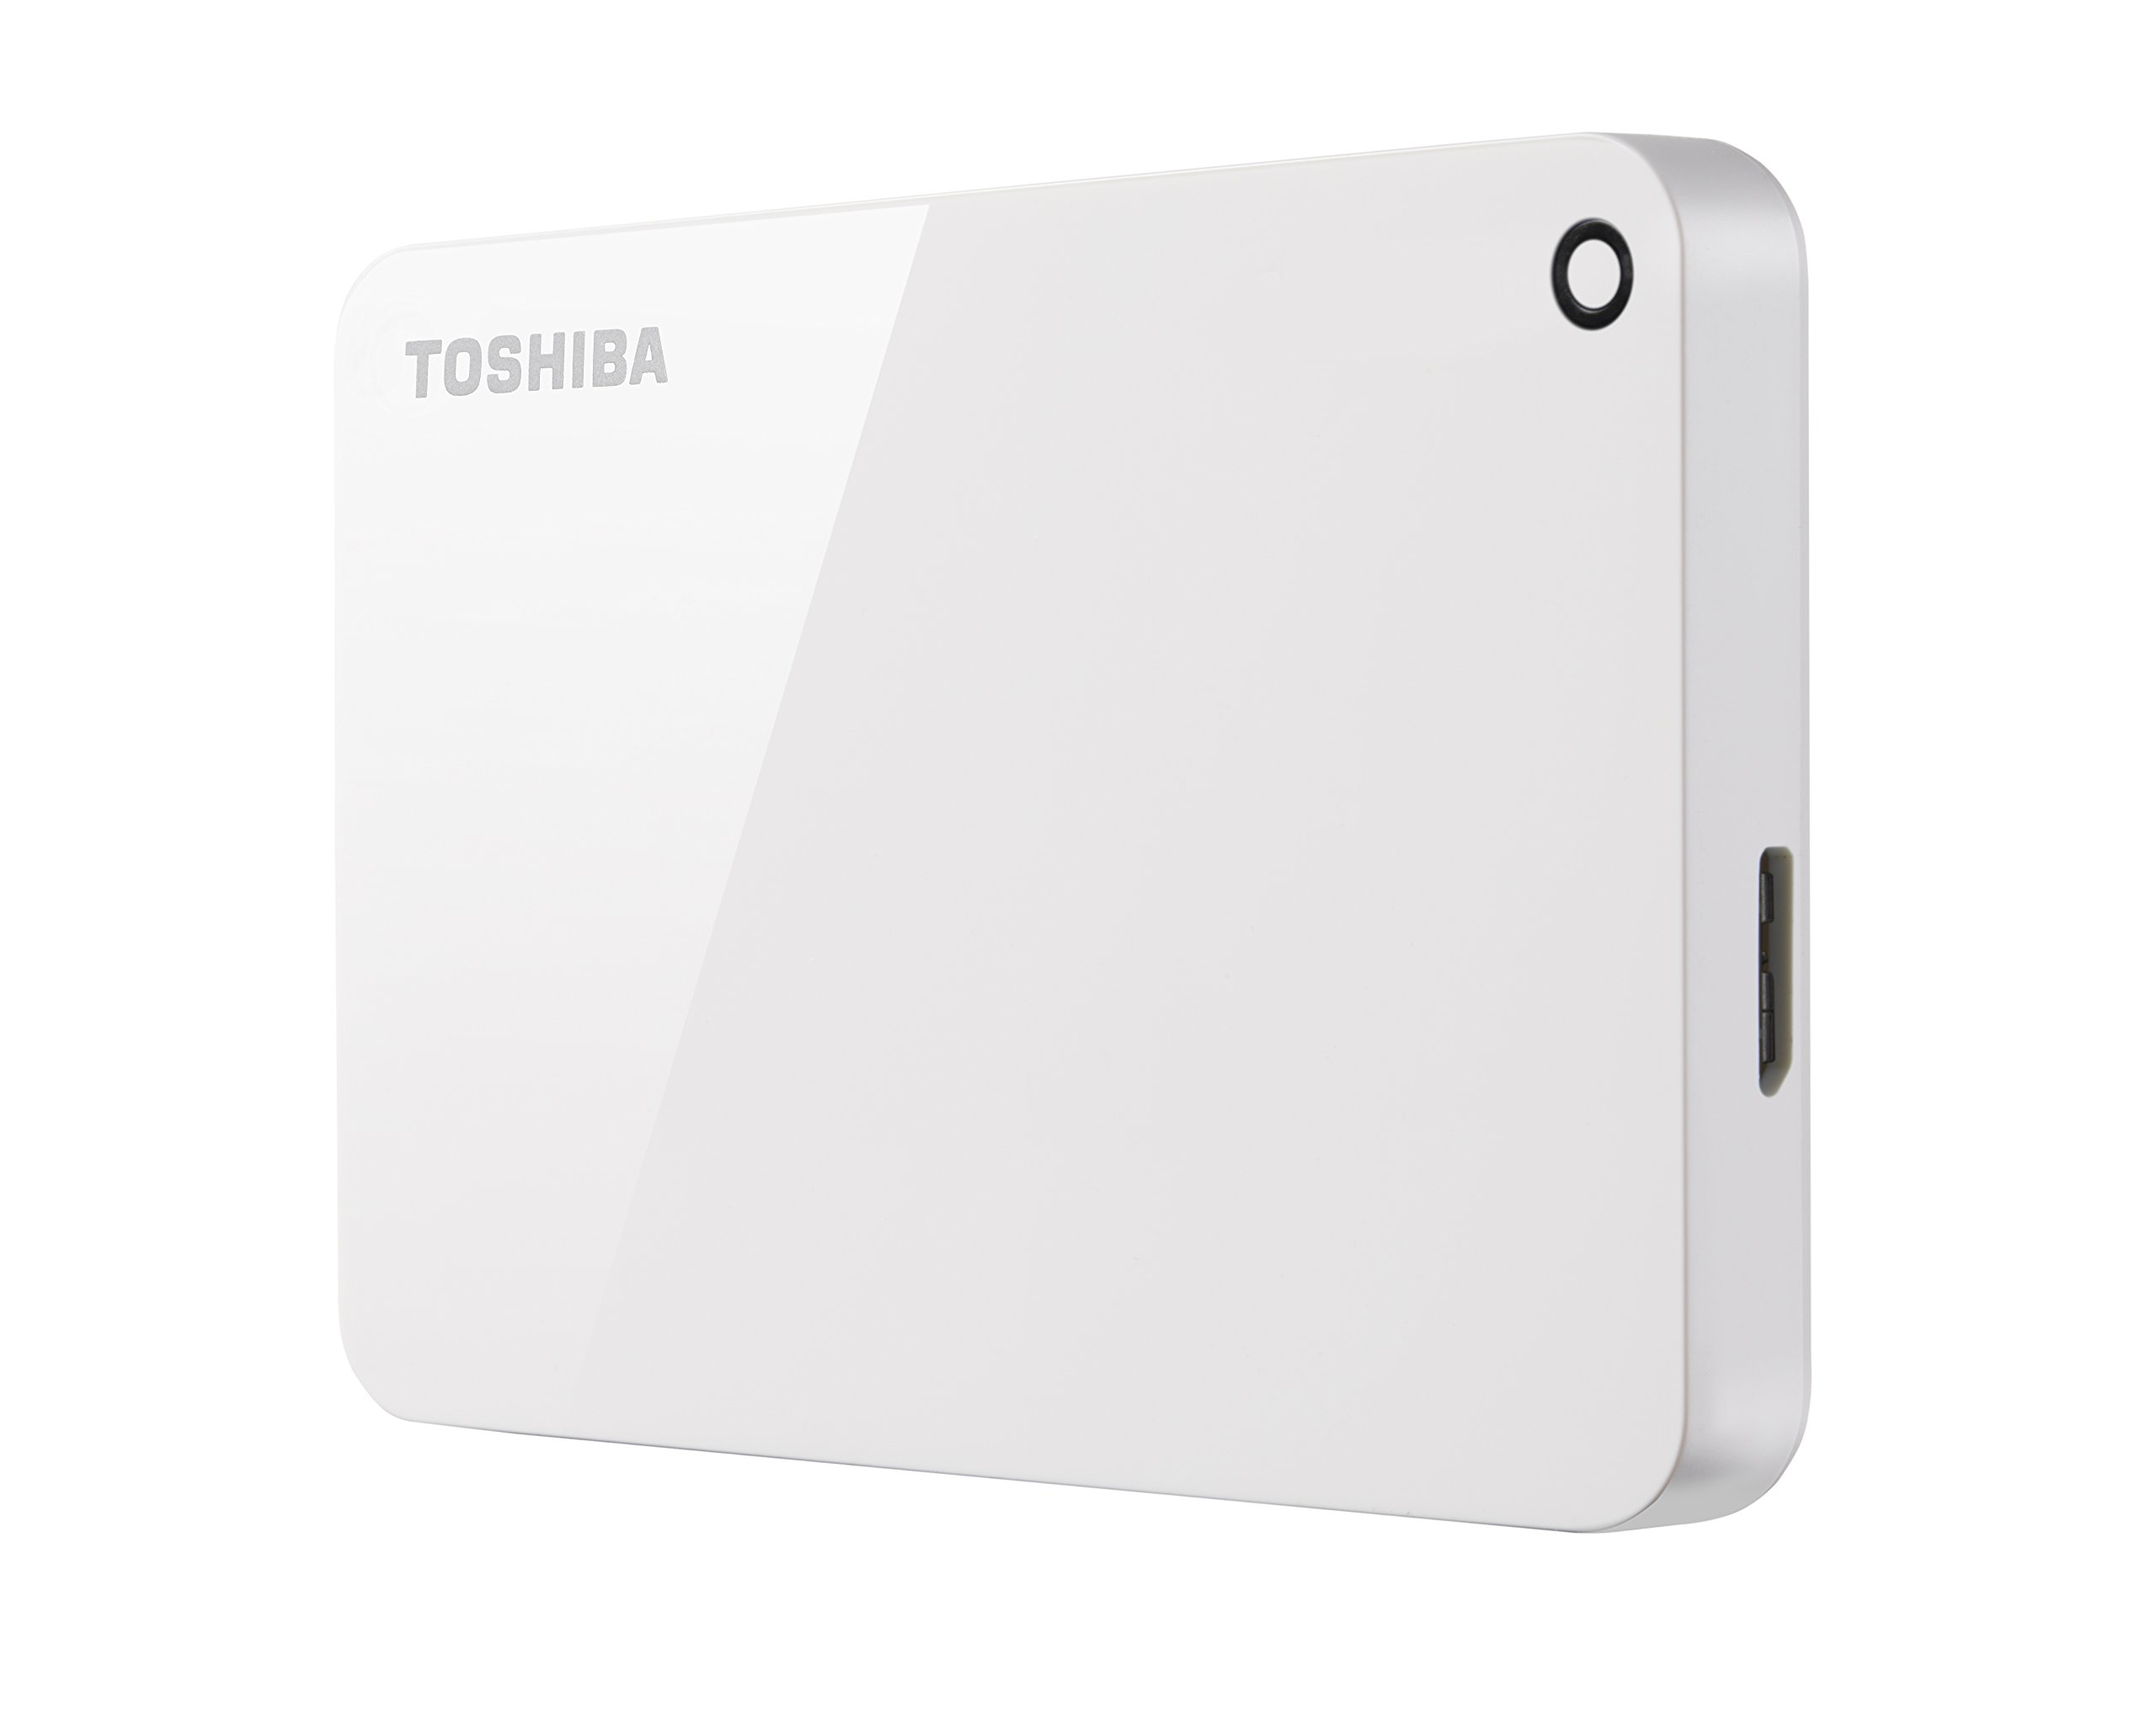 Toshiba Canvio Advance 2TB Portable External Hard Drive USB 3.0, White (HDTC920XW3AA) by Toshiba (Image #3)